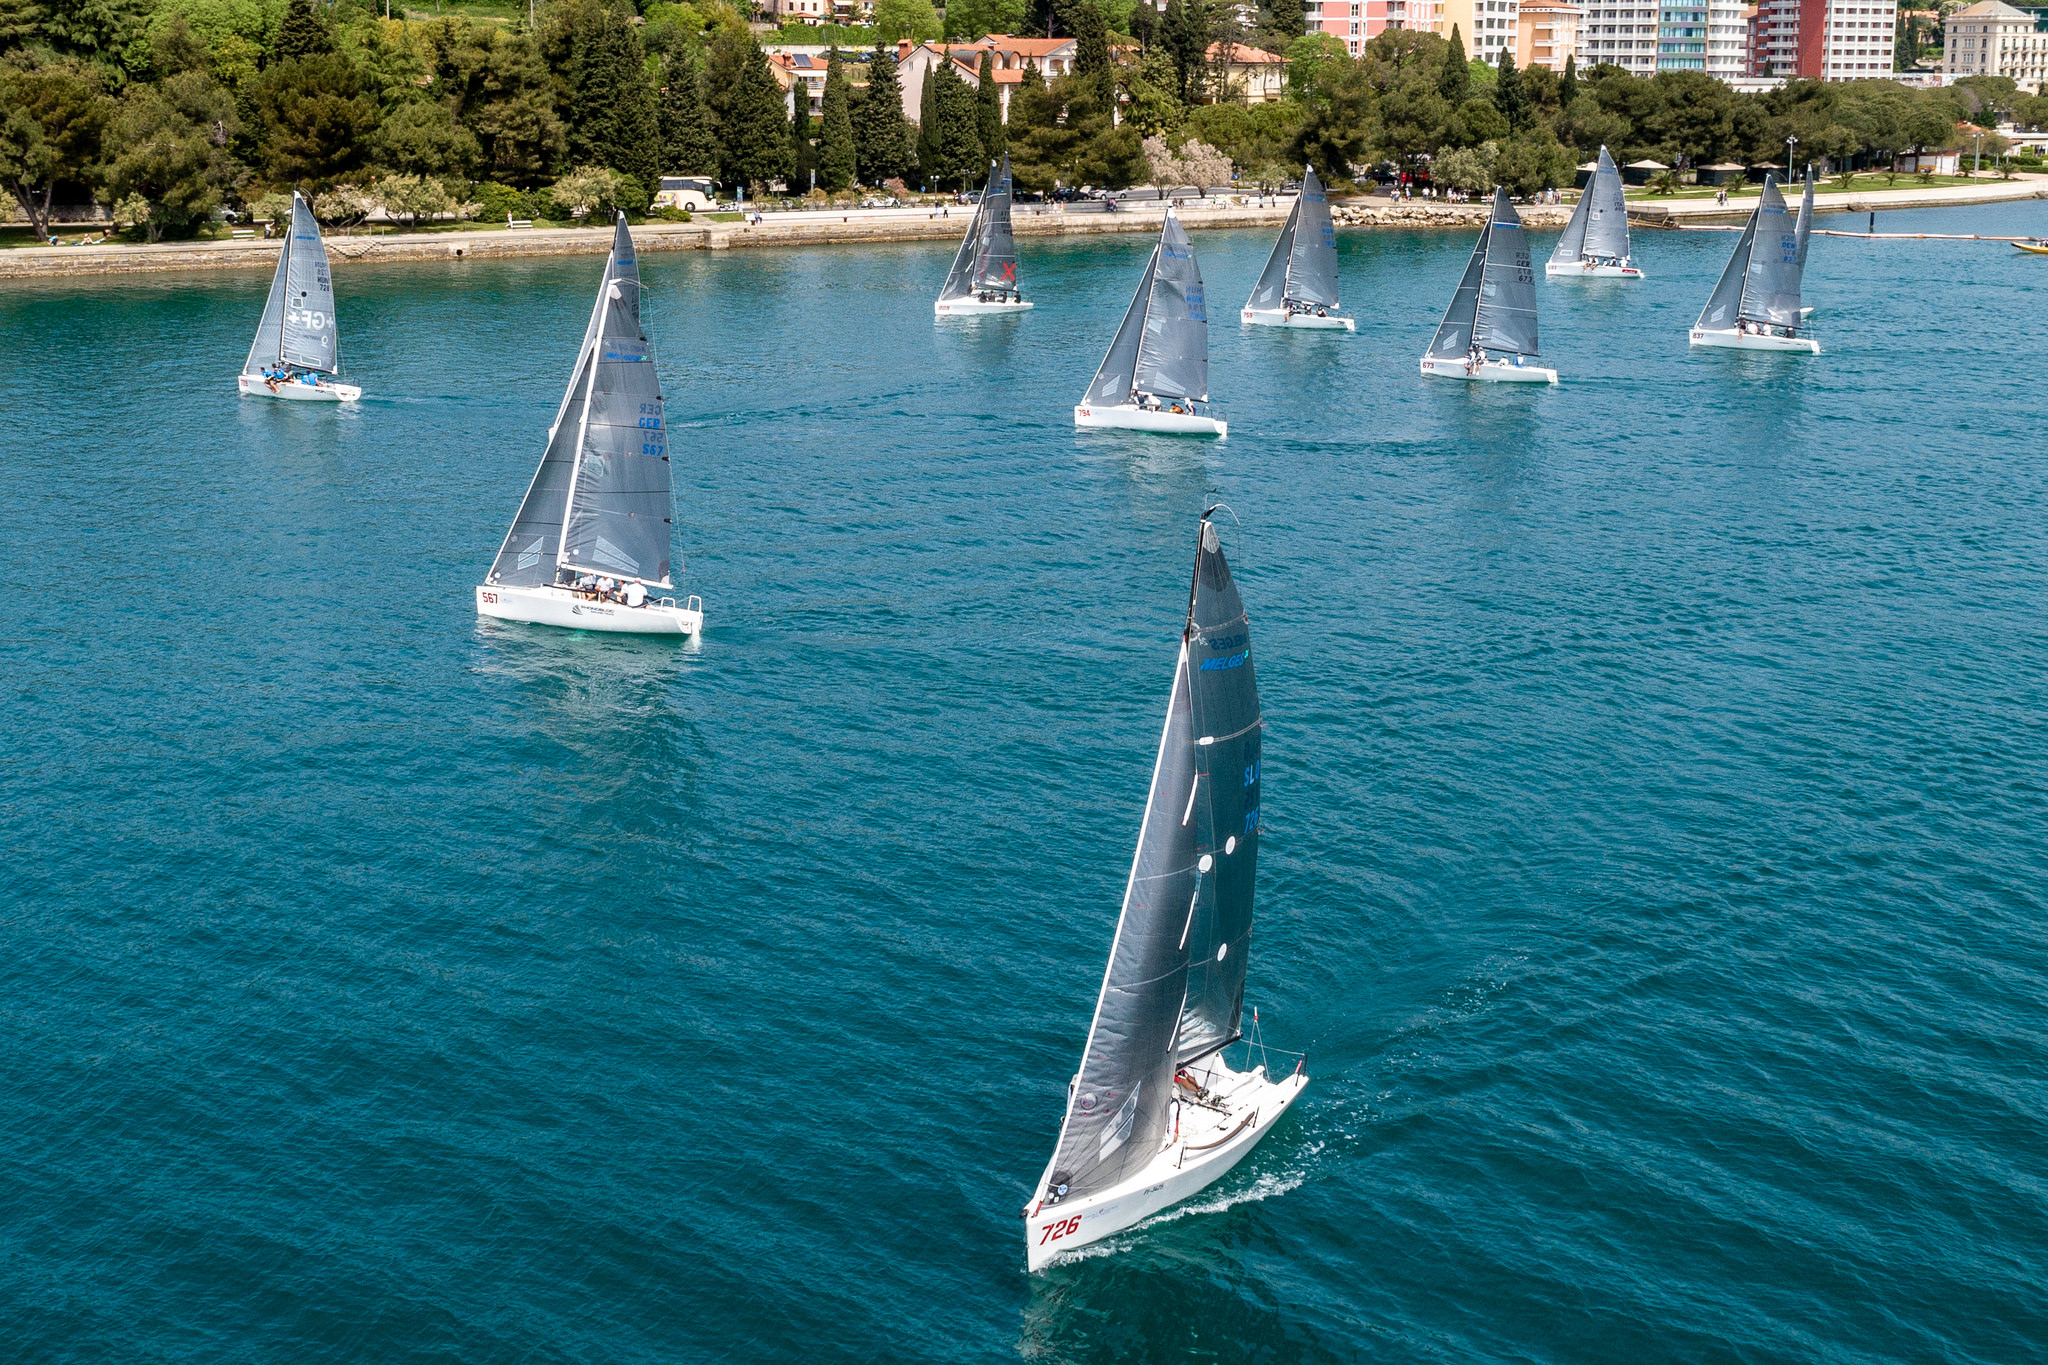 GEARING UP TO 2019 MARINA PORTOROŽ MELGES 24 REGATTA